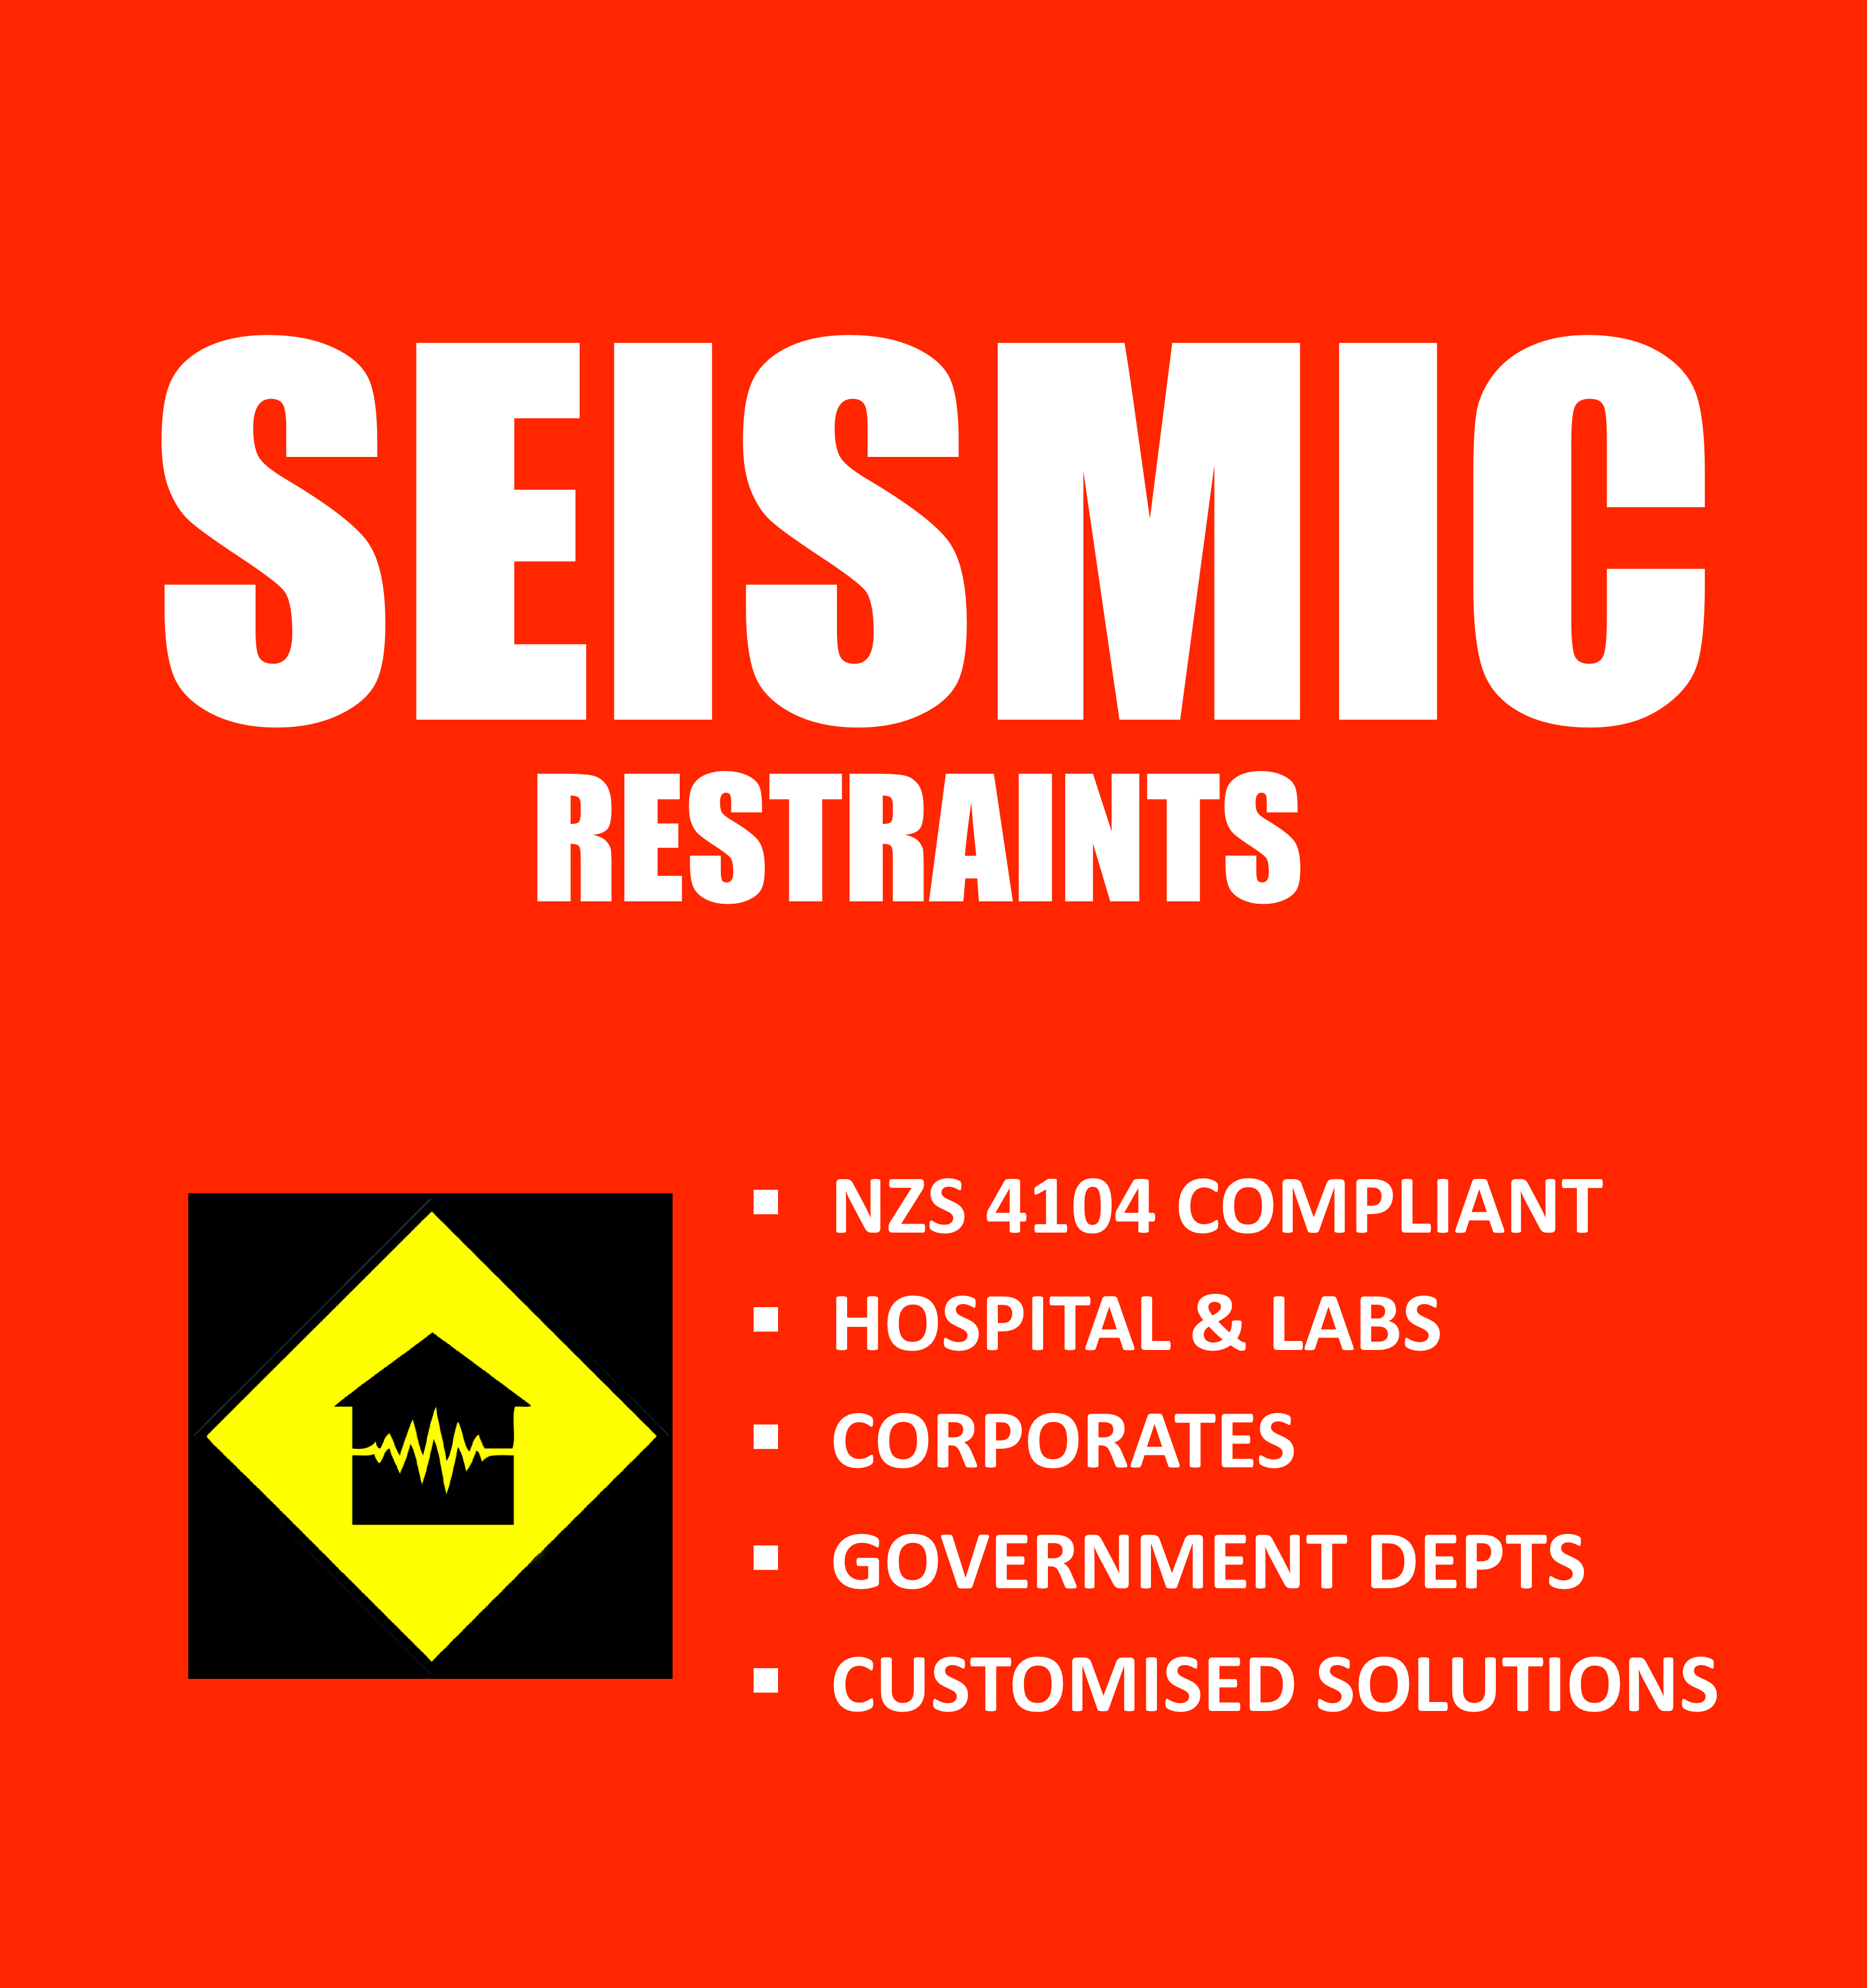 NZS 4104 Compliant, Hospital & Labs, Corporates, Government Depts, Customised Solutions